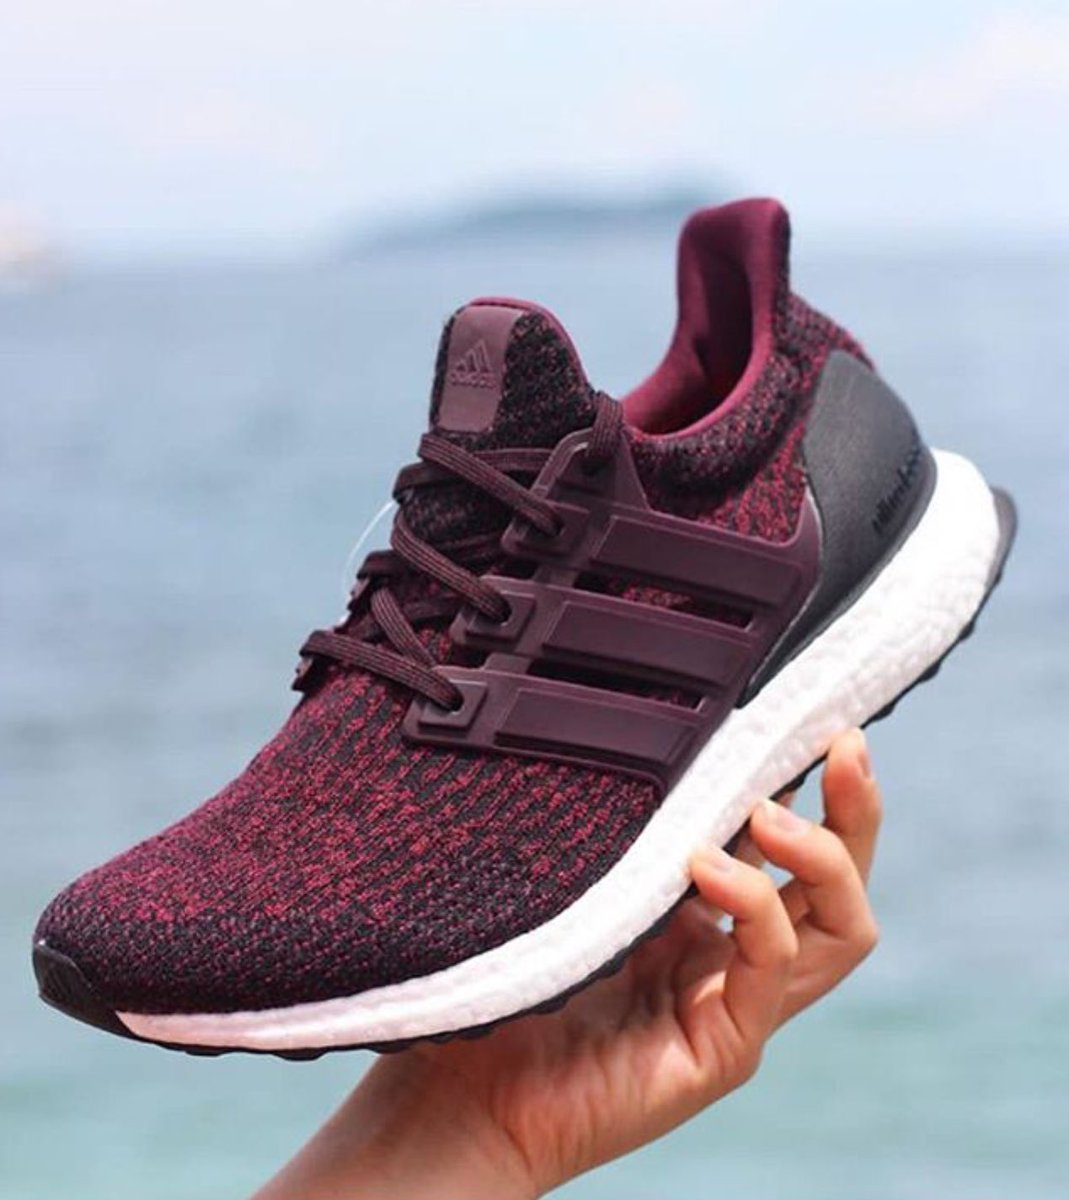 a2dbb62b88ee2 ... best price champcarts on twitter adidas ultra boost 3.0 maroon auto  checkout need a personal for